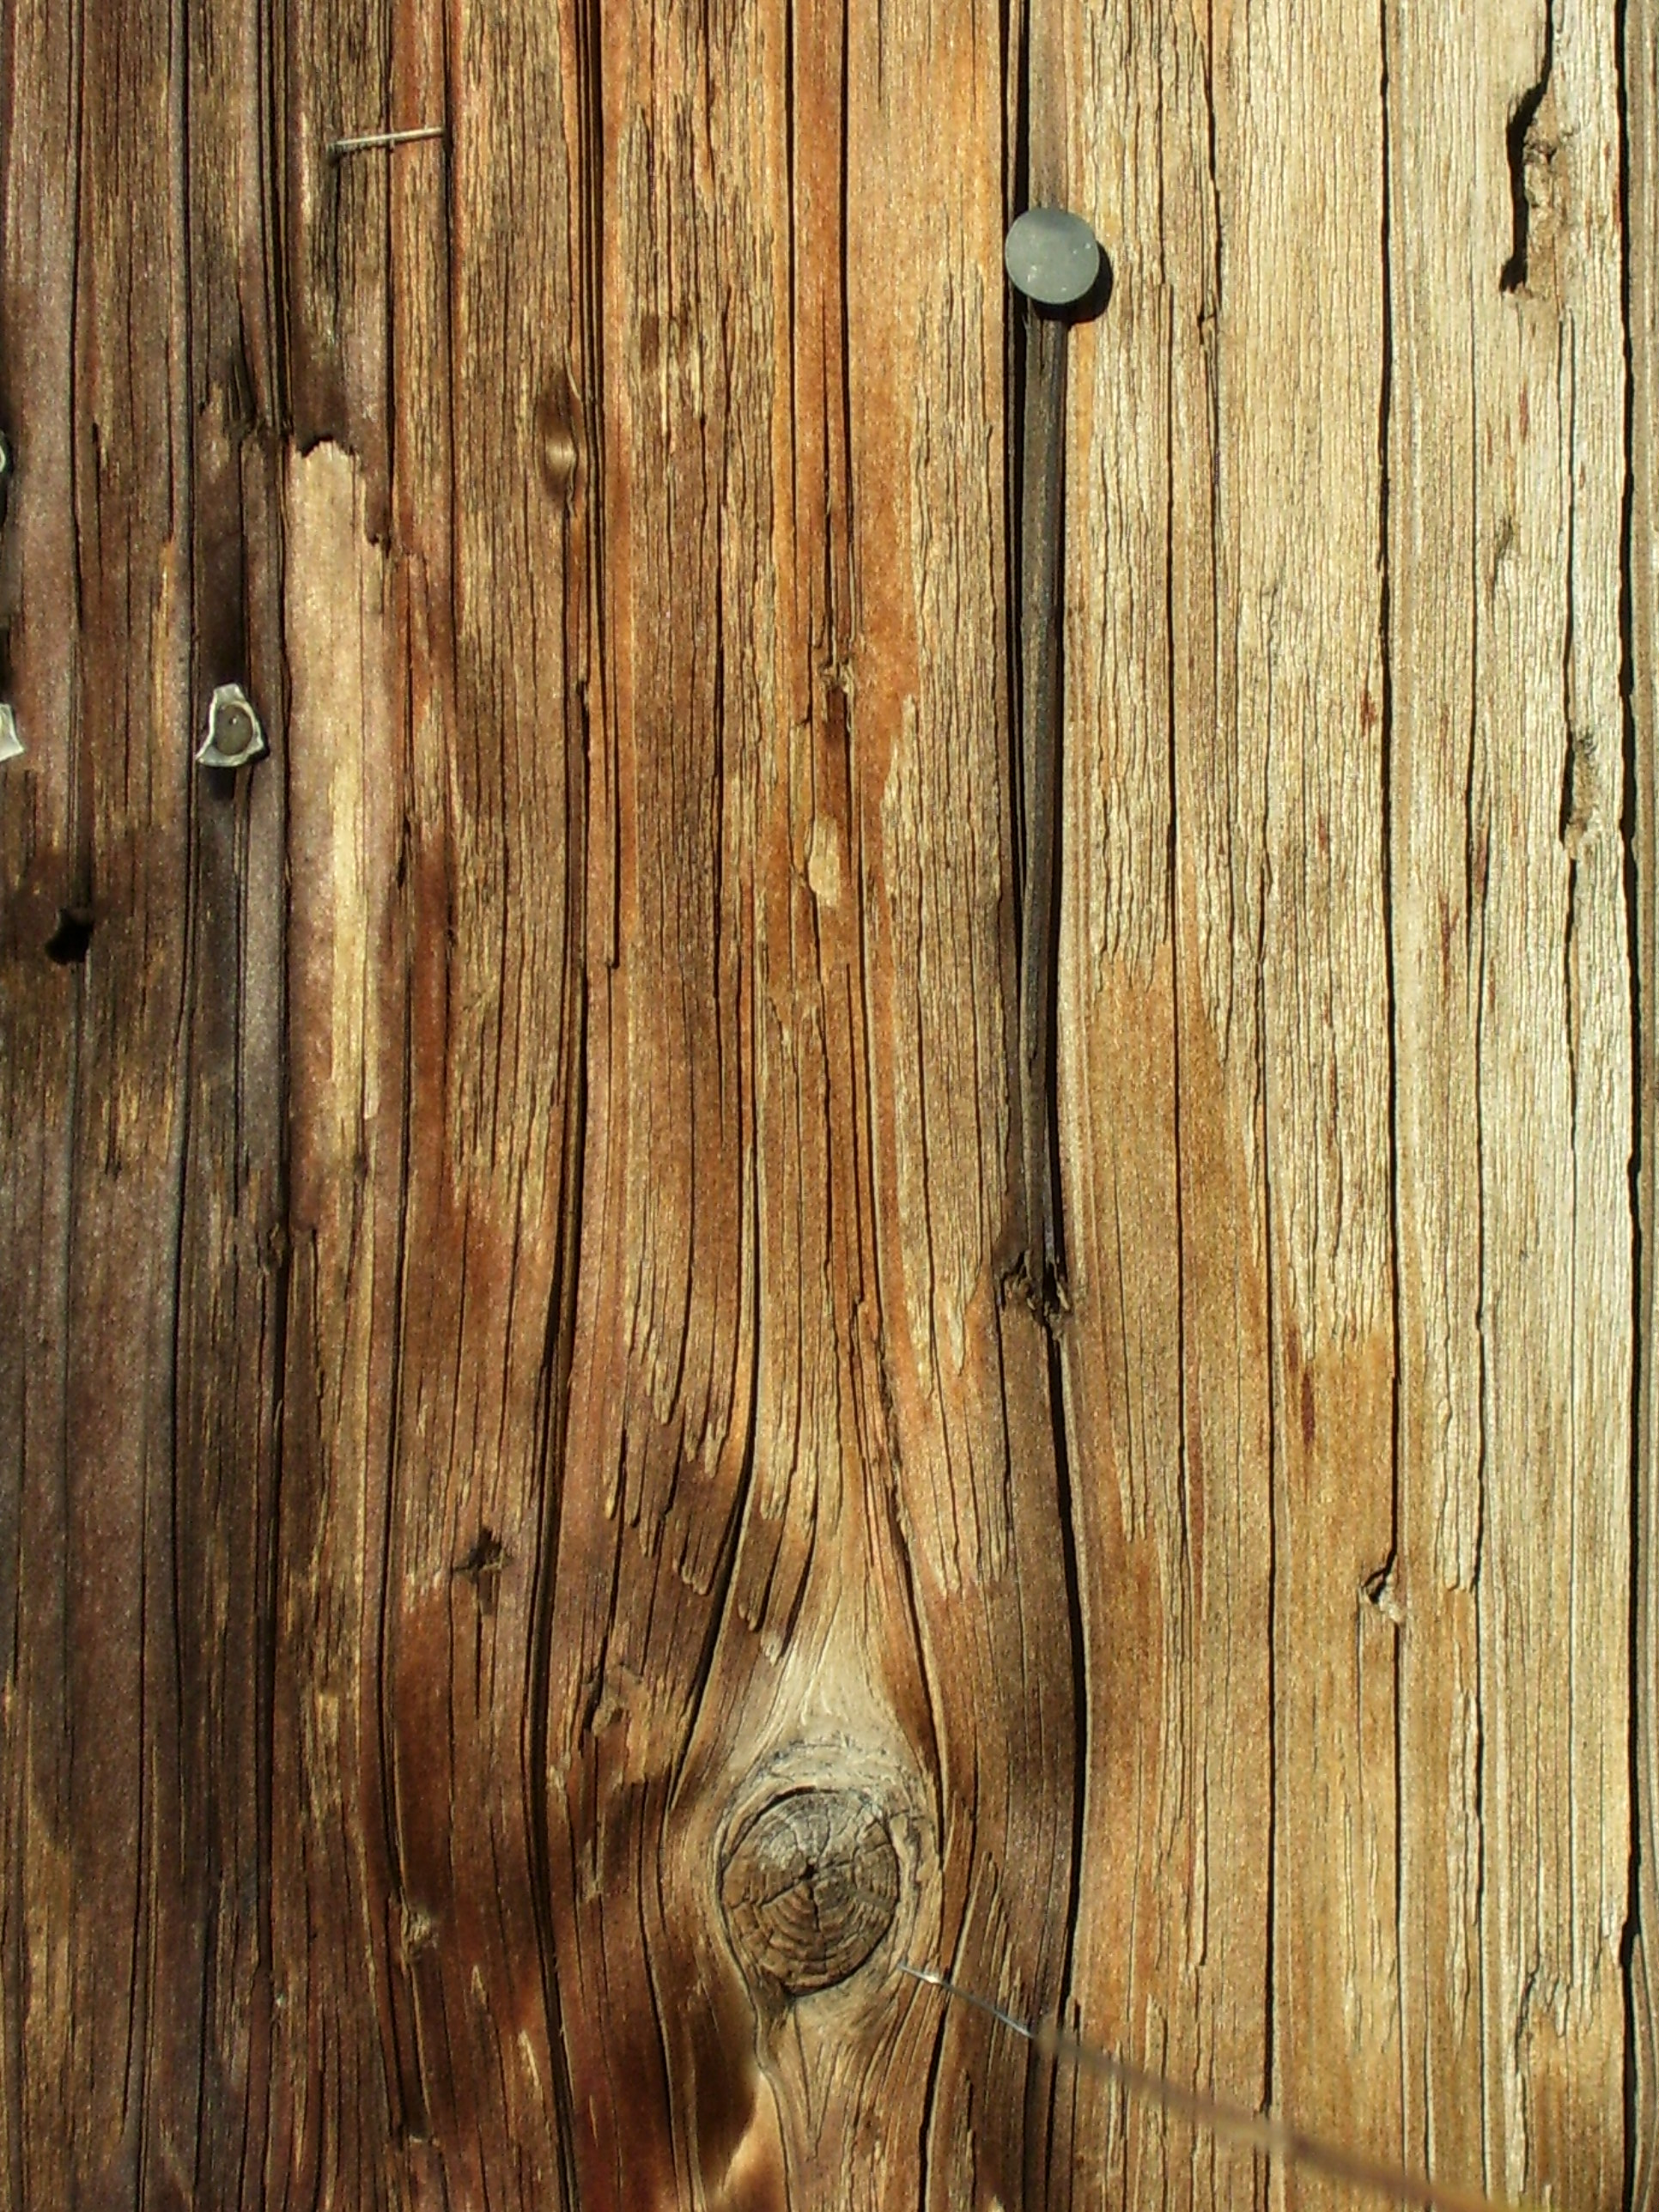 Wooden Textures for Designers (21)